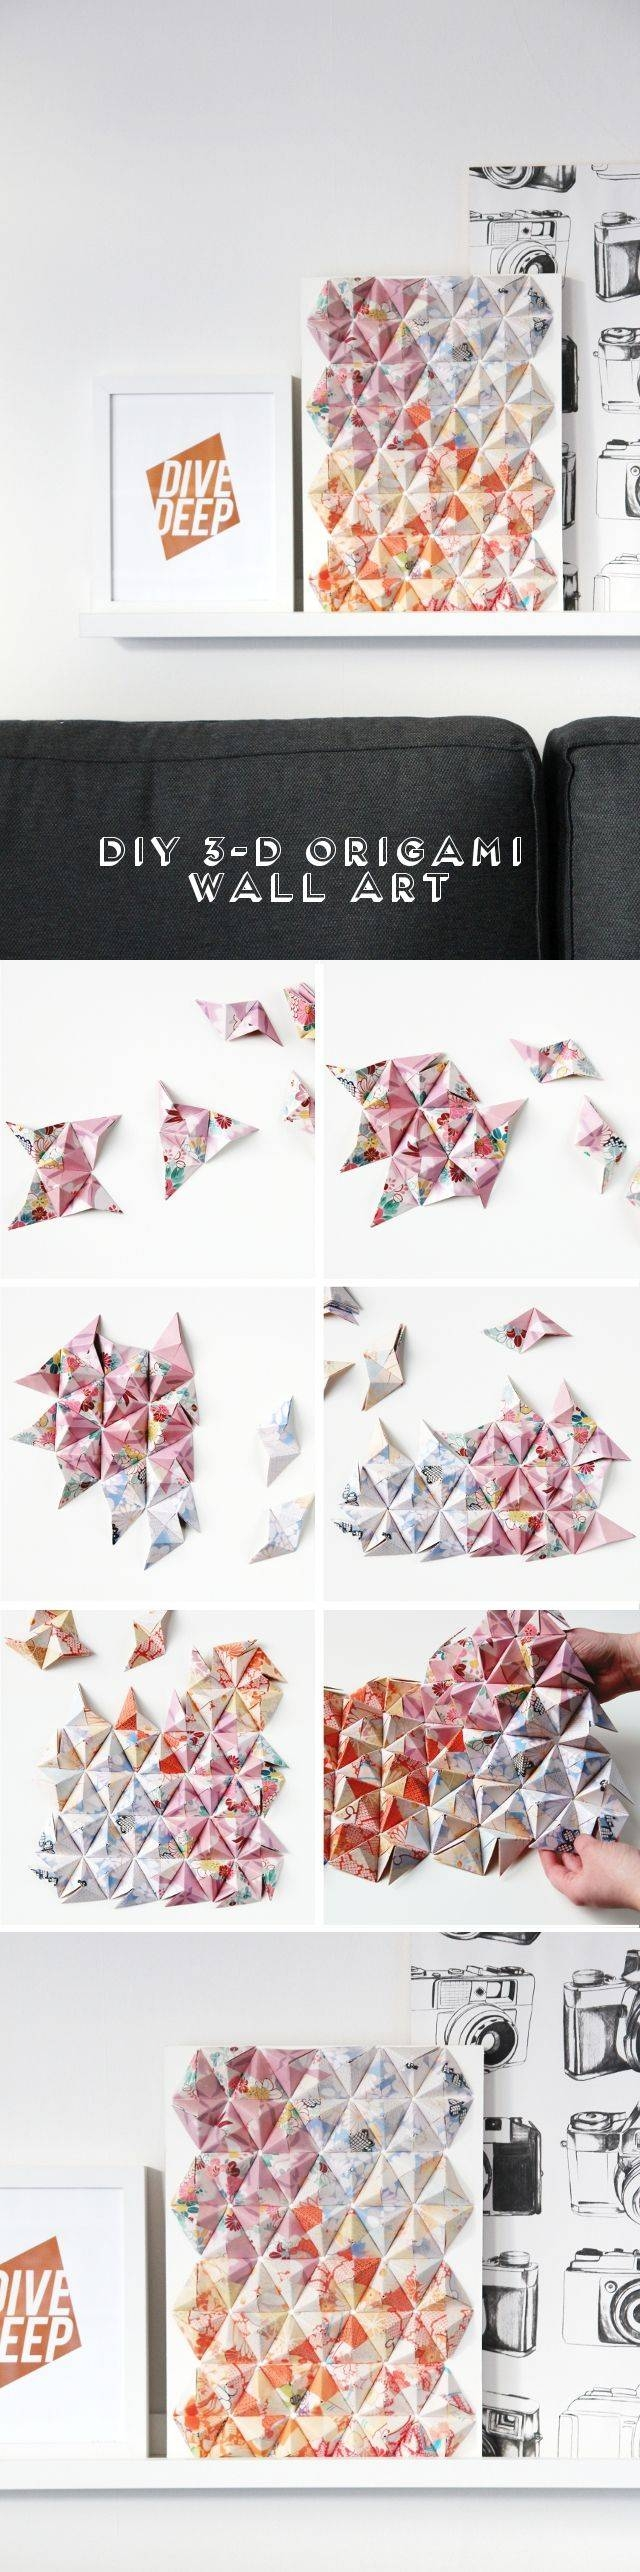 25+ Unique Origami Wall Art Ideas On Pinterest | Paper Wall Decor Within Most Up To Date 3d Clouds Out Of Paper Wall Art (View 14 of 25)